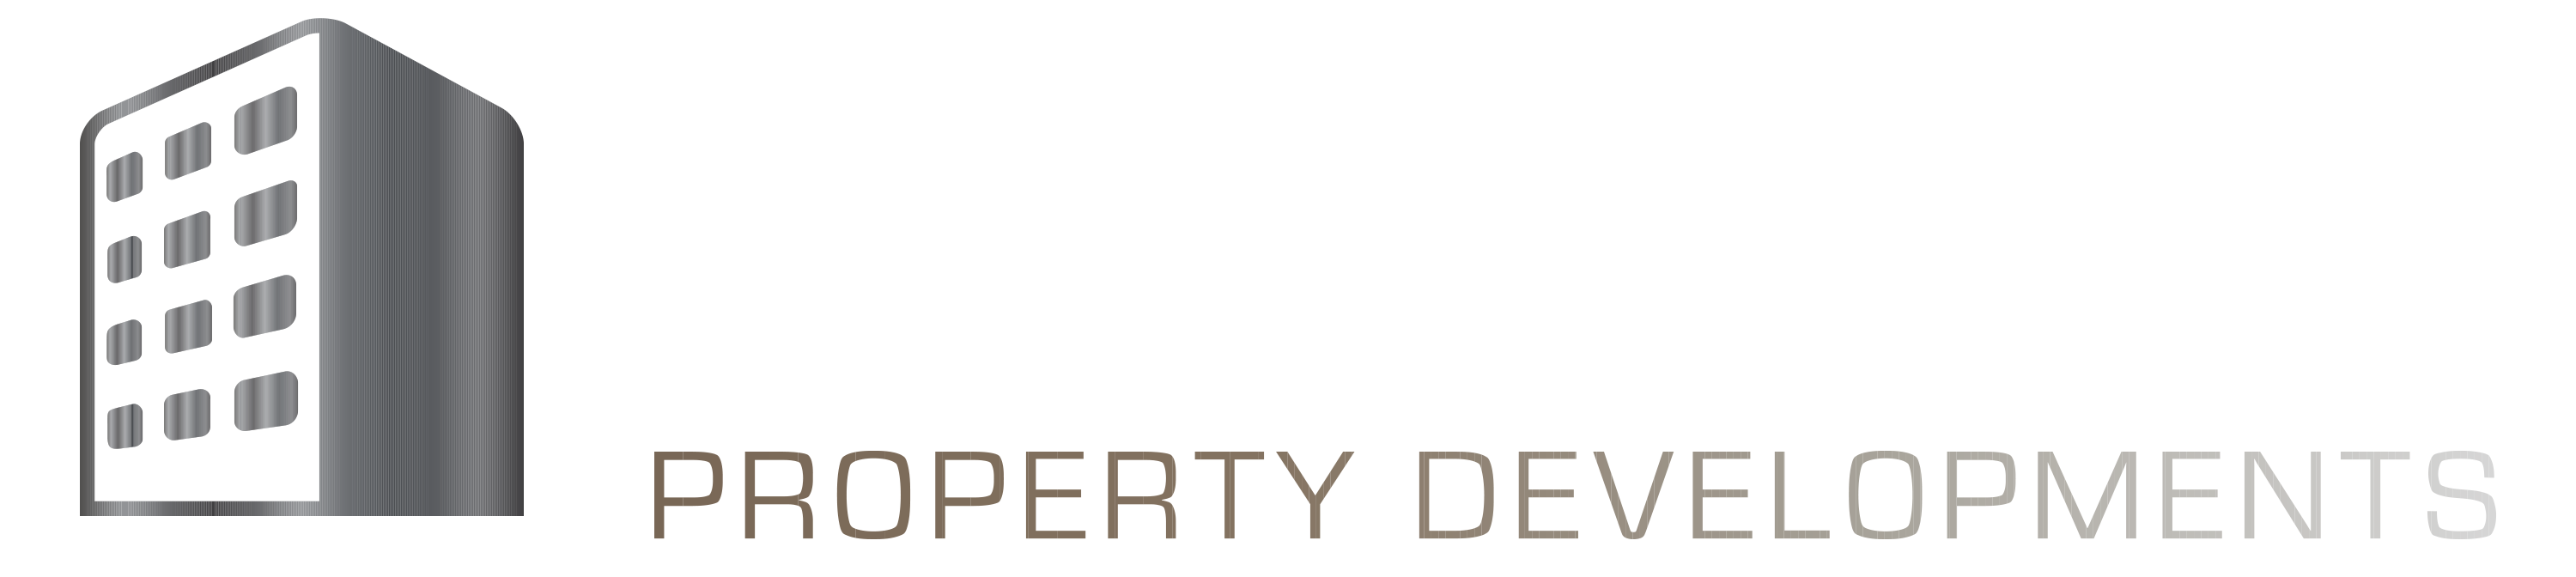 HUDSON PROPERTY DEVELOPMENT CORPORATION